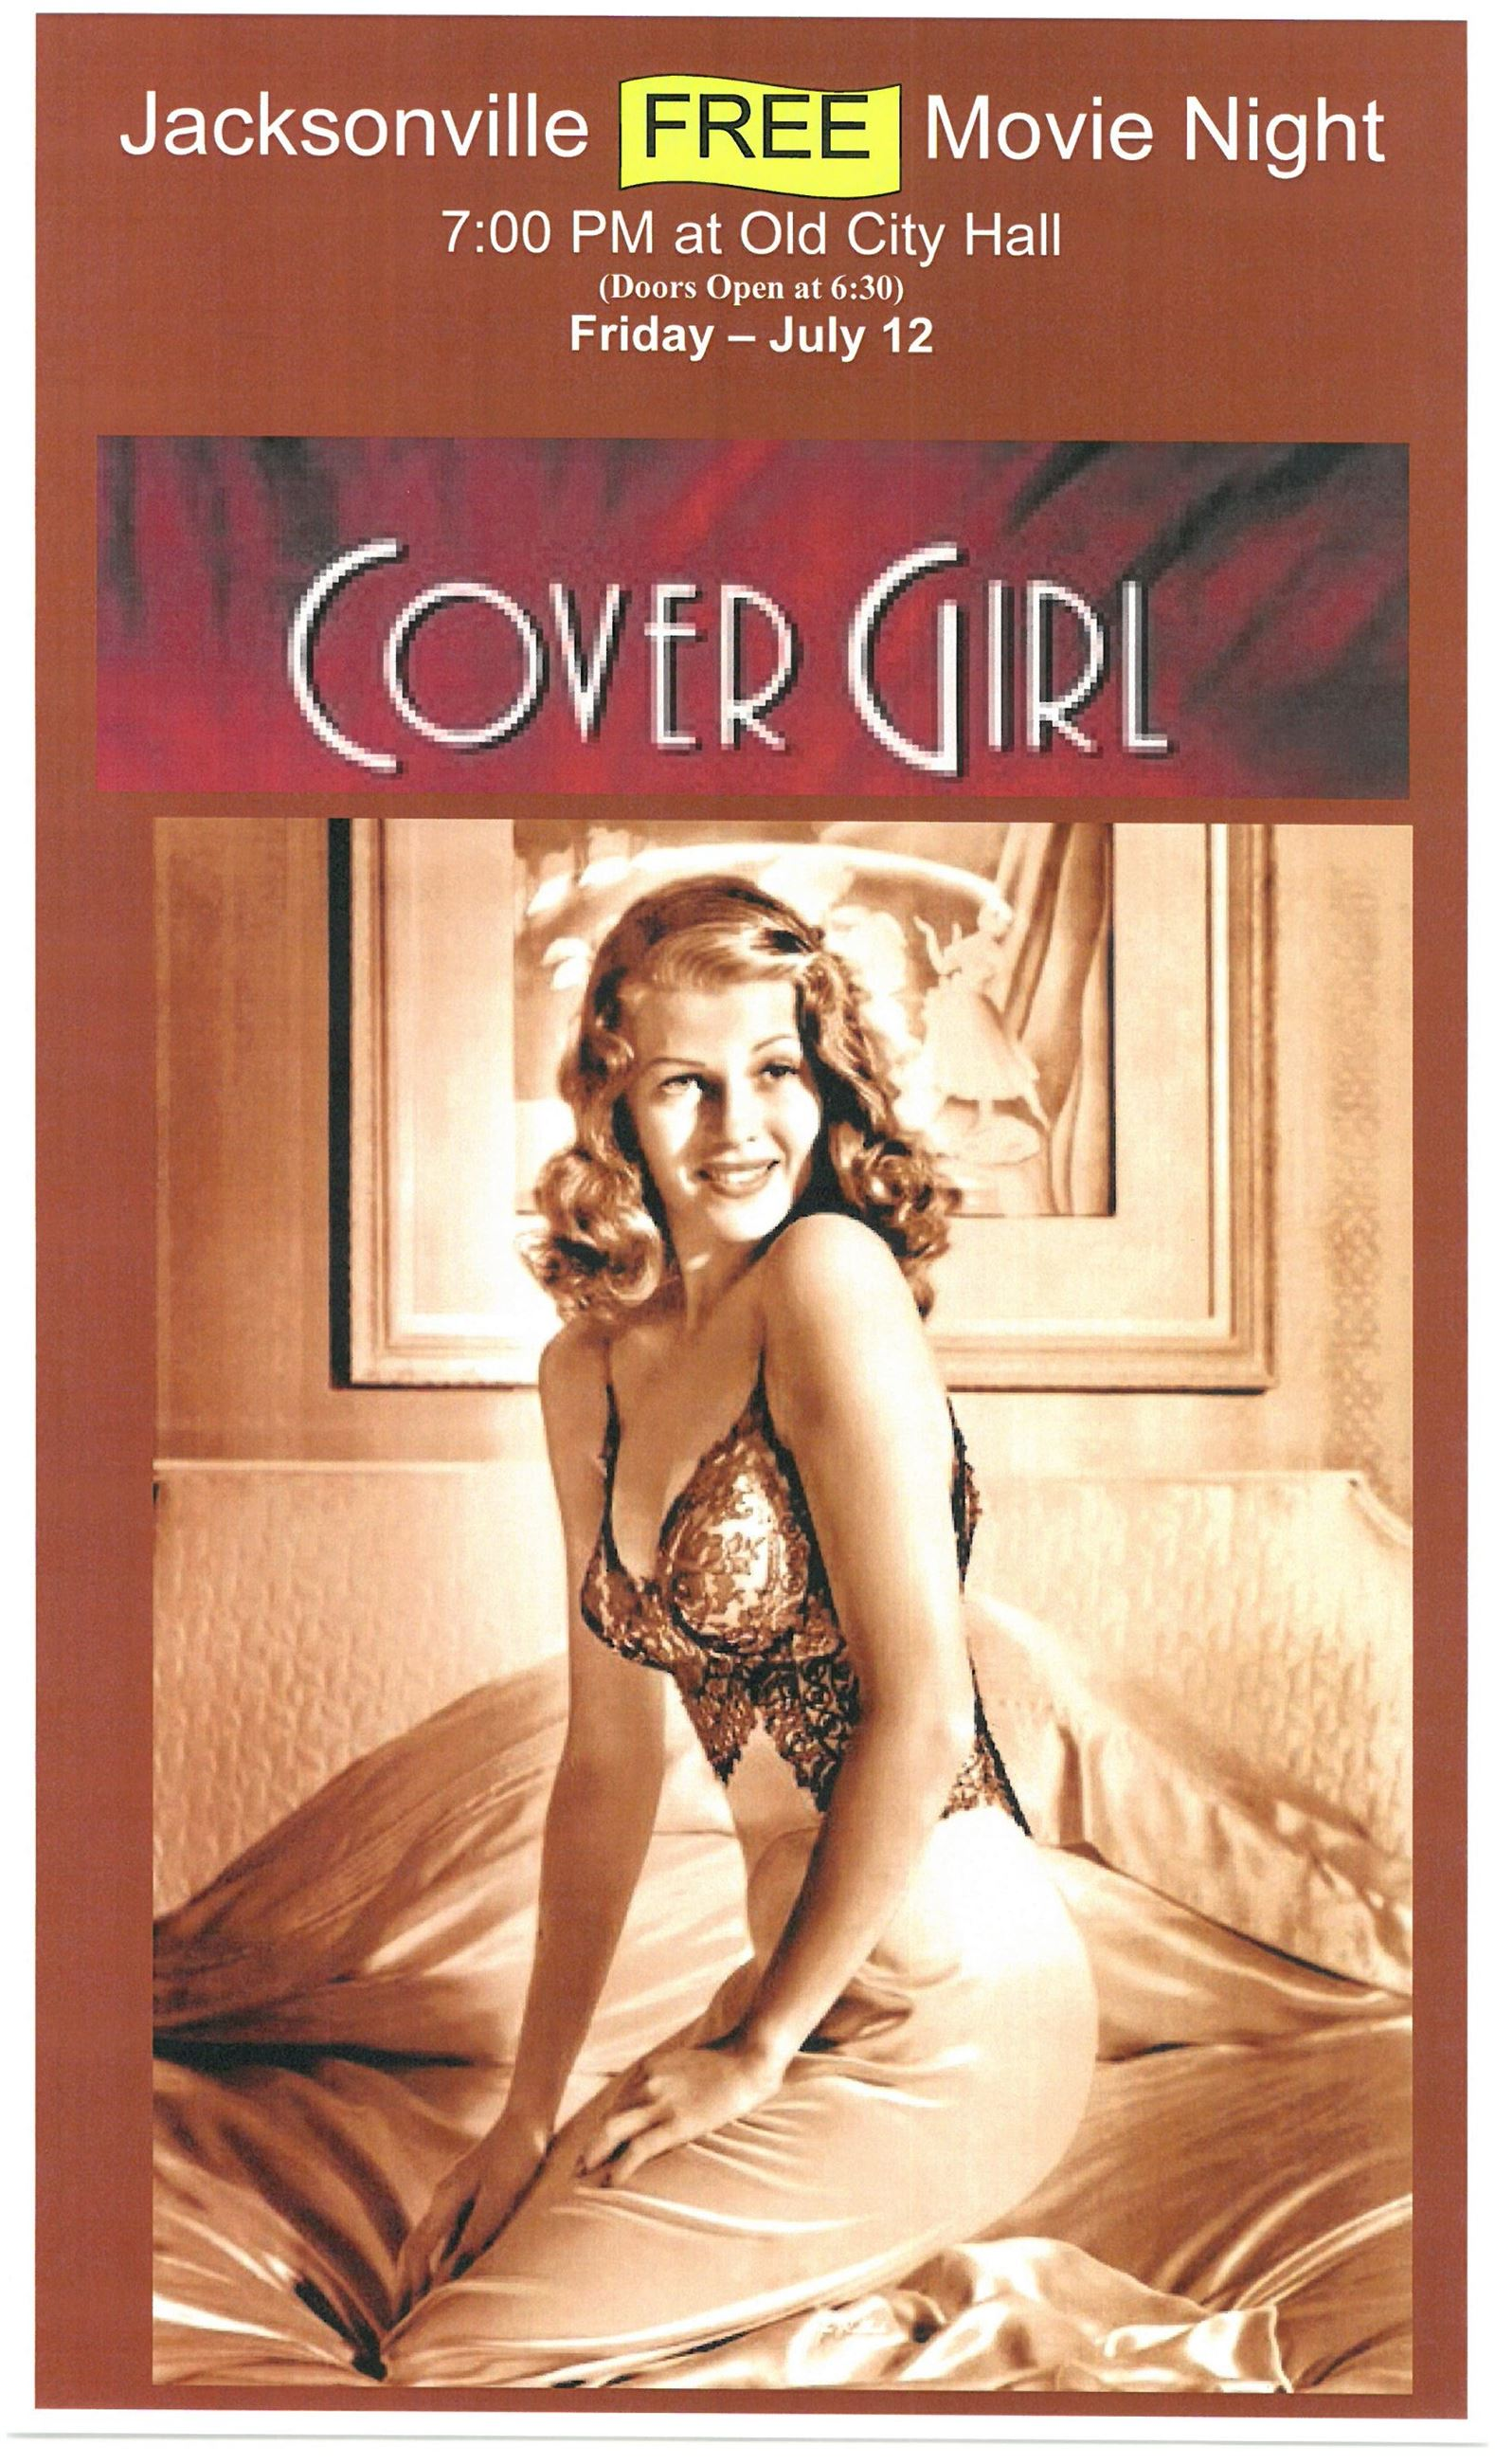 MOVIE Cover Girl 07 12 19